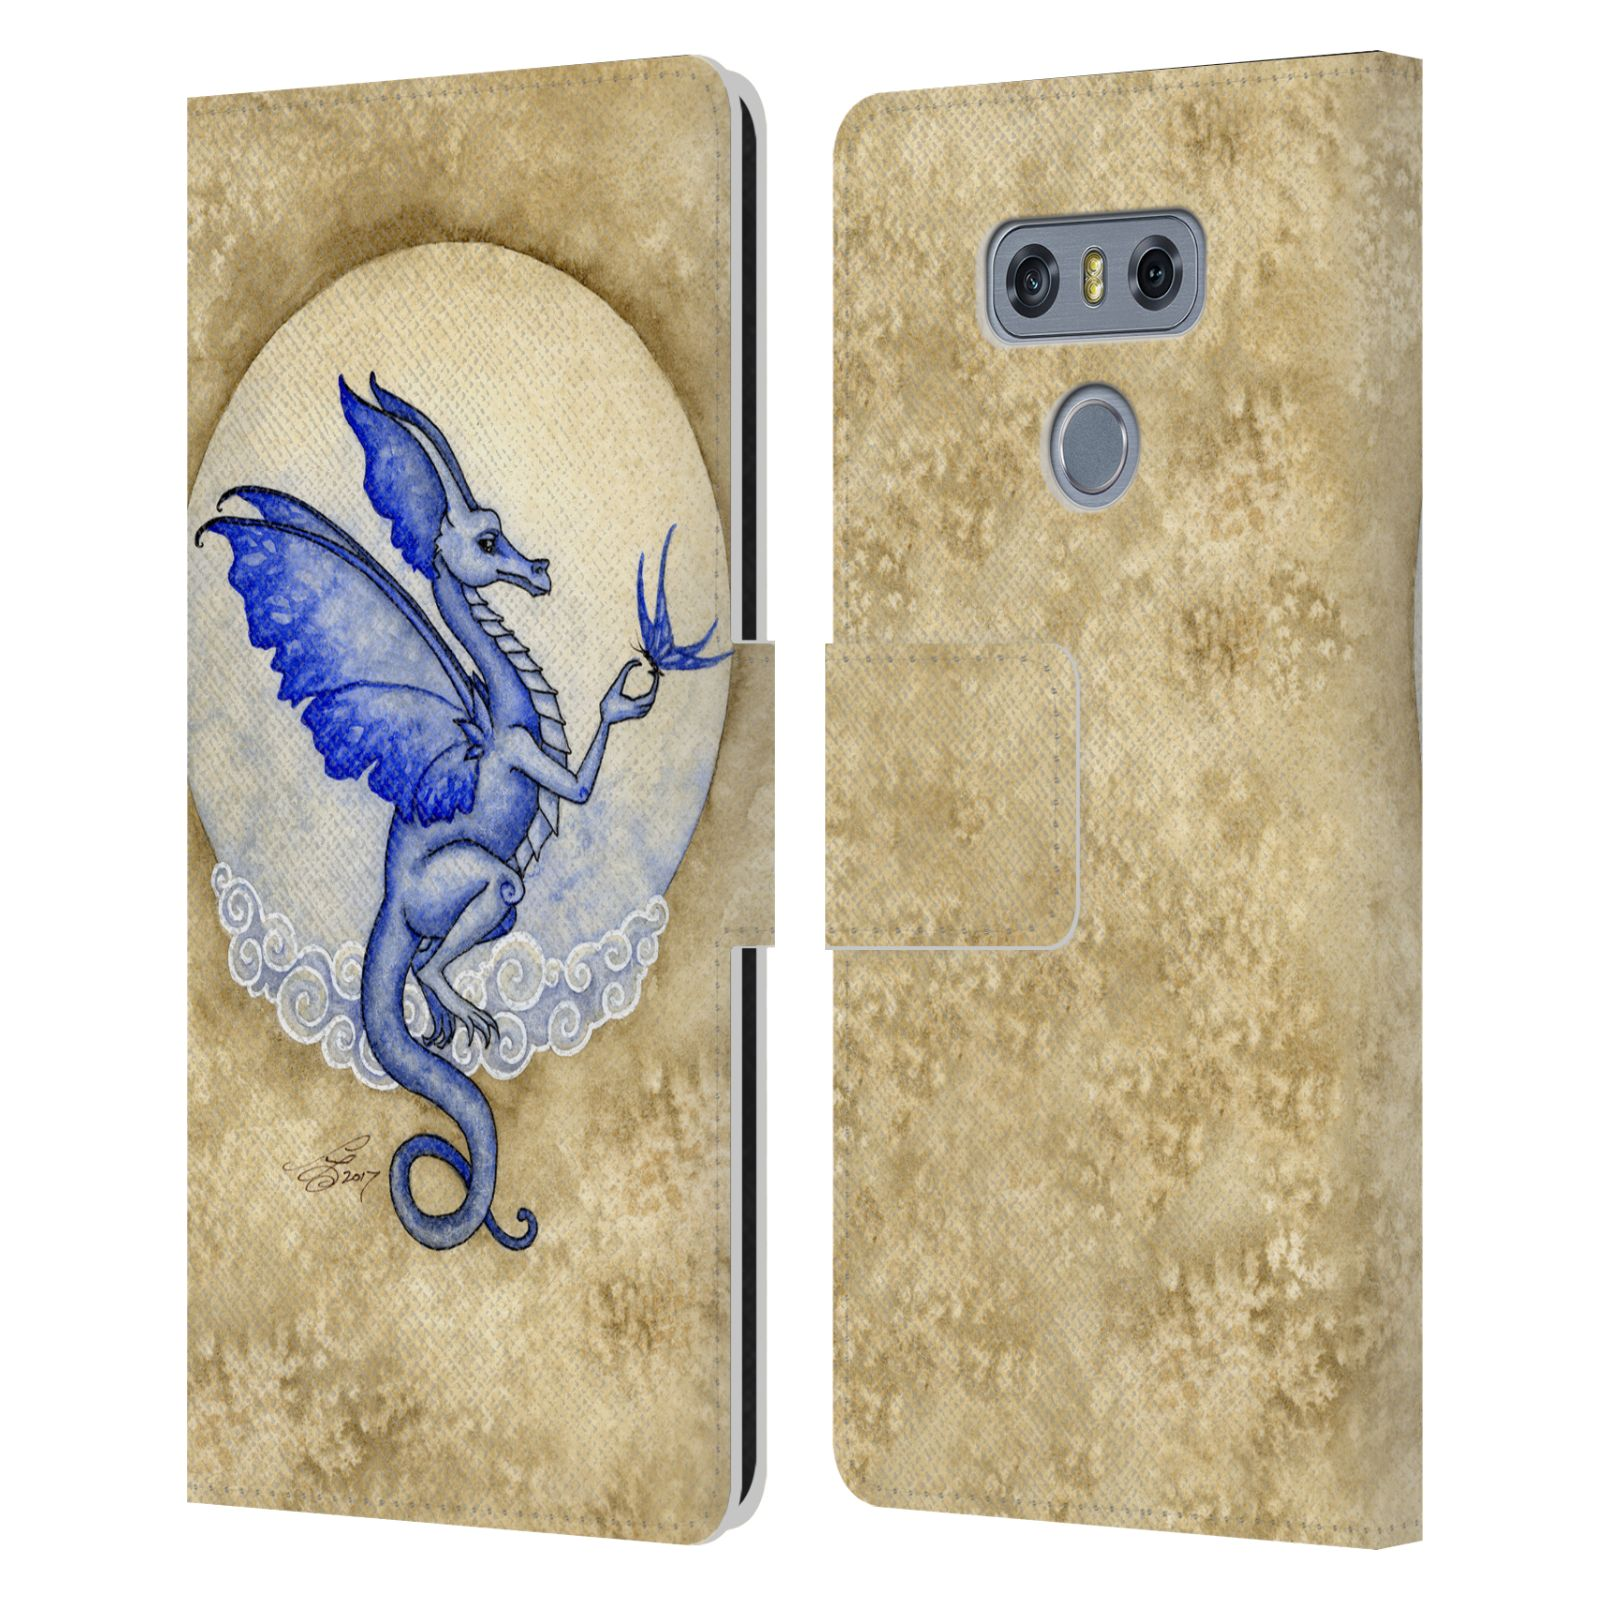 OFFICIAL-AMY-BROWN-MYTHICAL-LEATHER-BOOK-WALLET-CASE-COVER-FOR-LG-PHONES-1